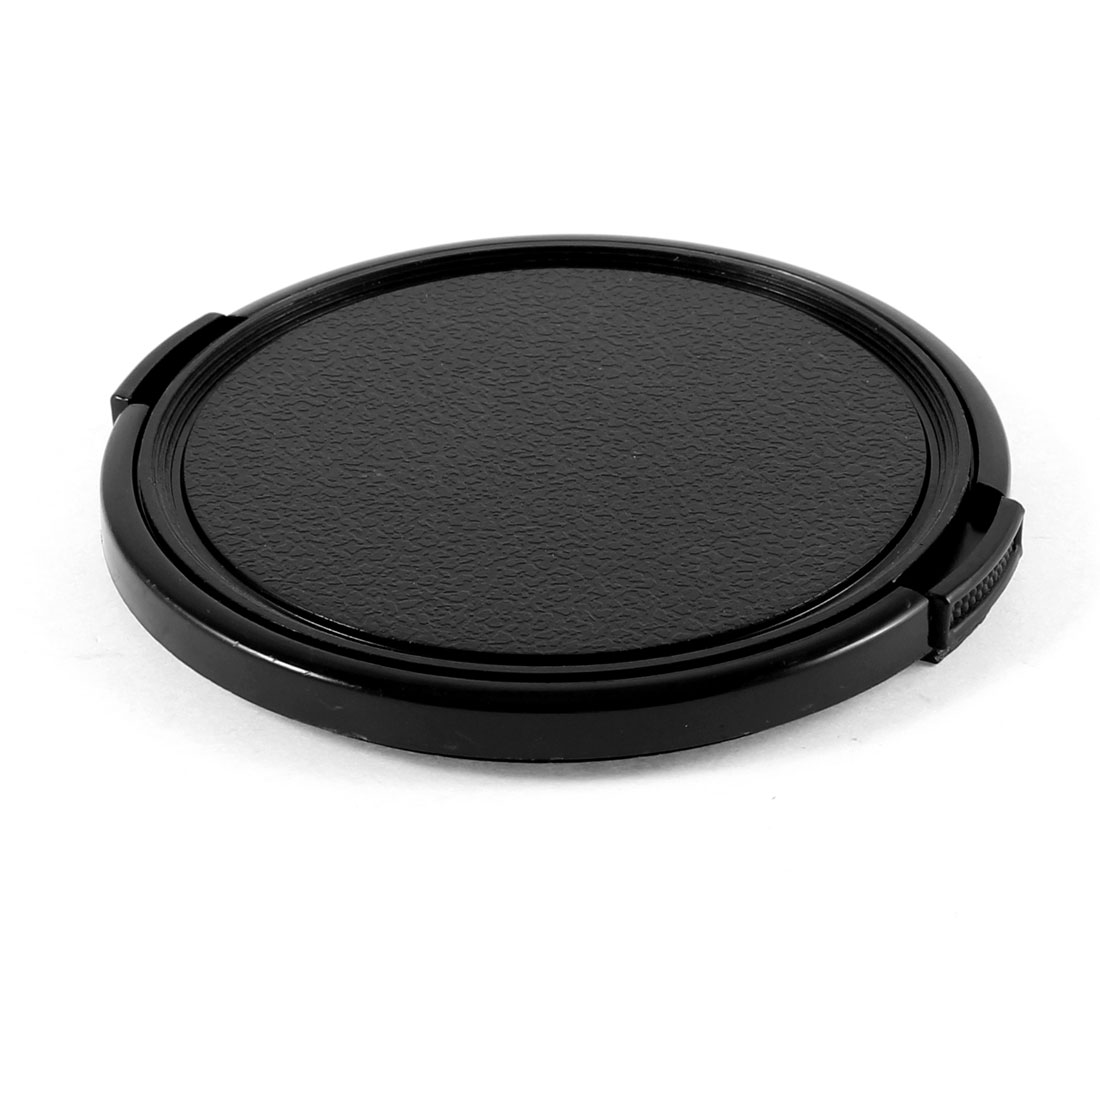 Univeral Camera 72mm Front Cap Cover for Canon Lens Filter